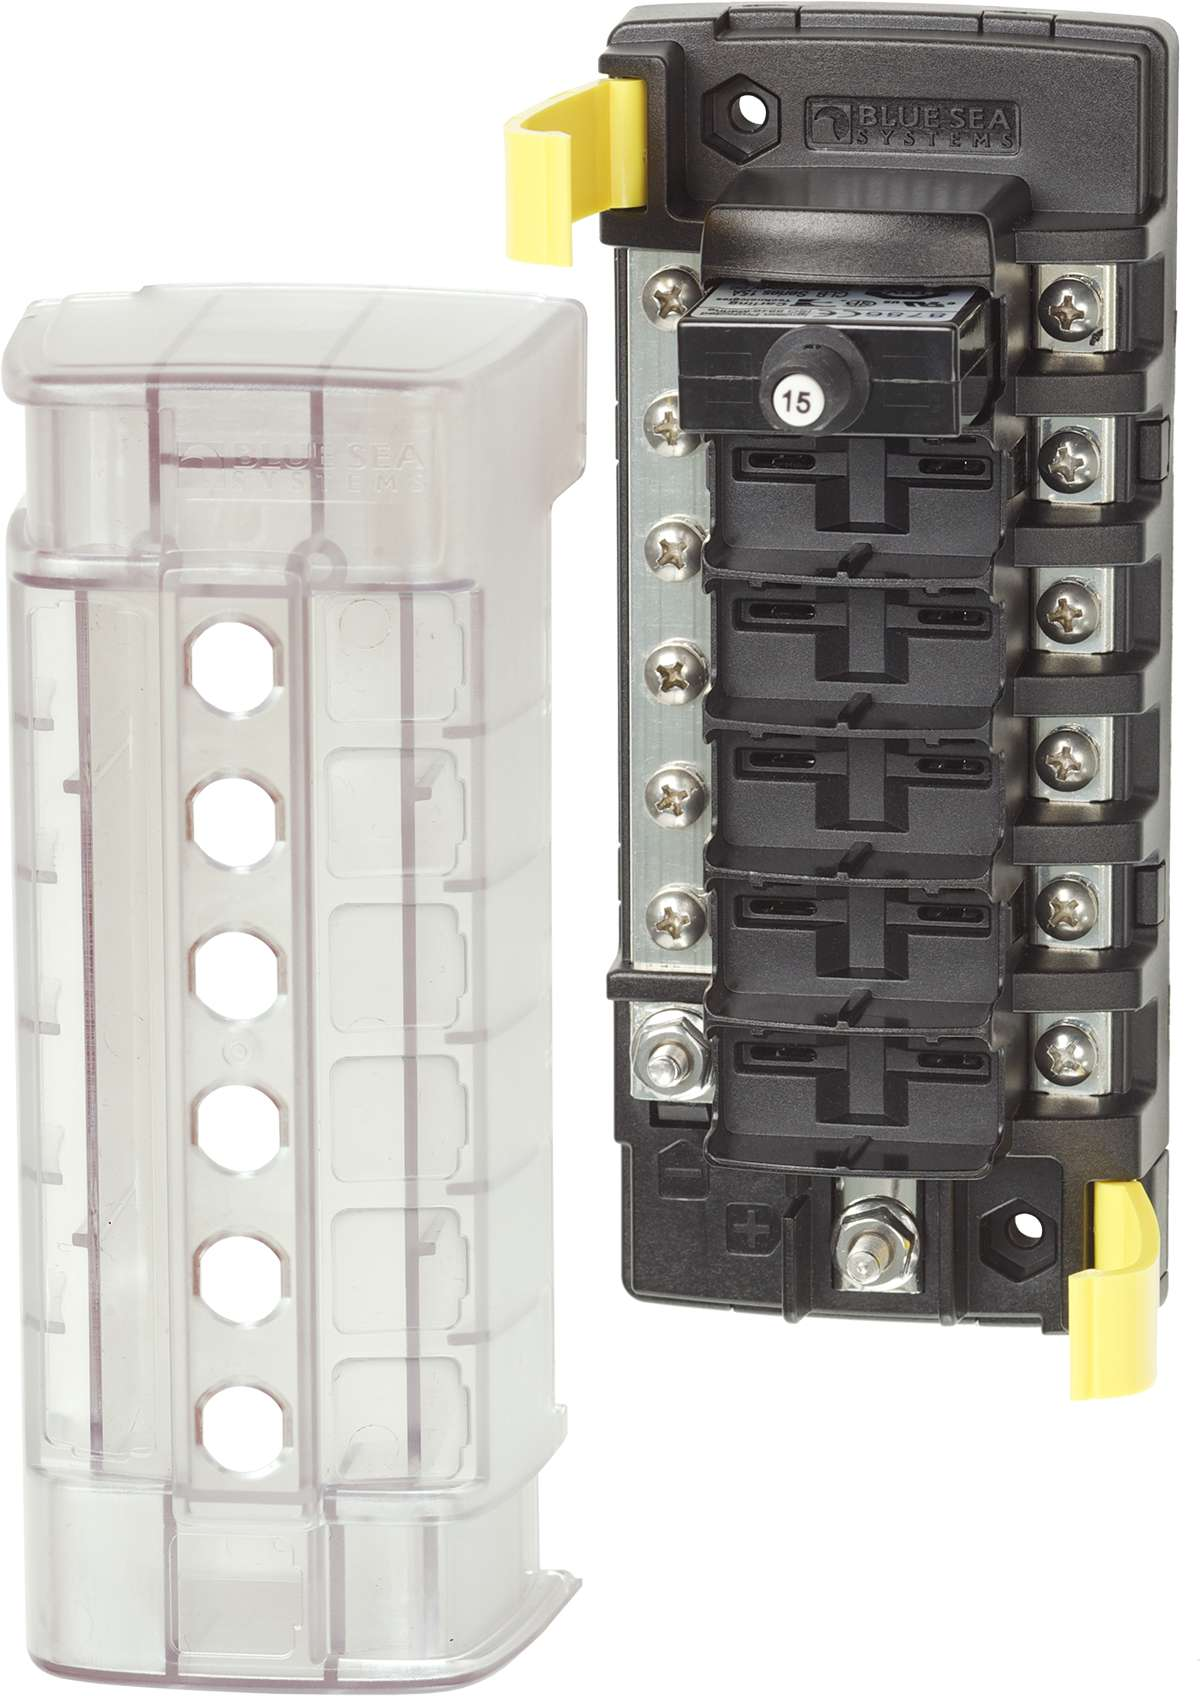 St Clb Circuit Breaker Block 6 Position With Negative